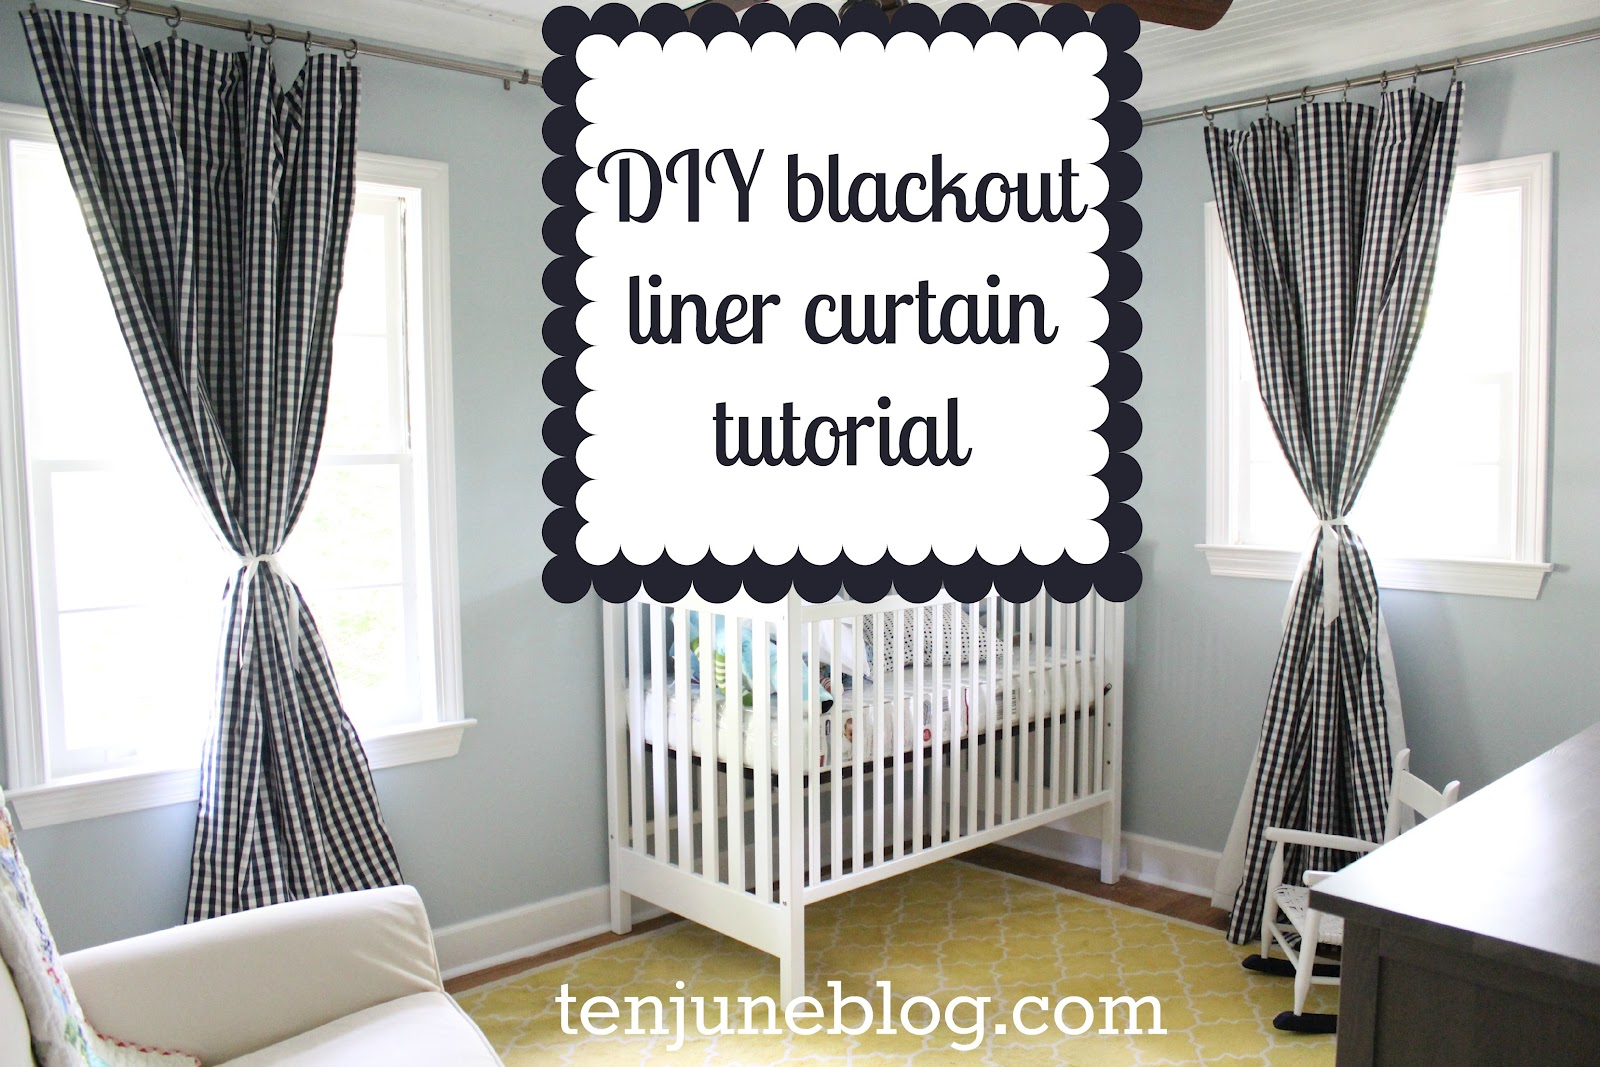 How To Make Curtain Lights Ten June Diy Blackout Curtain Tutorial How To Make Awesome